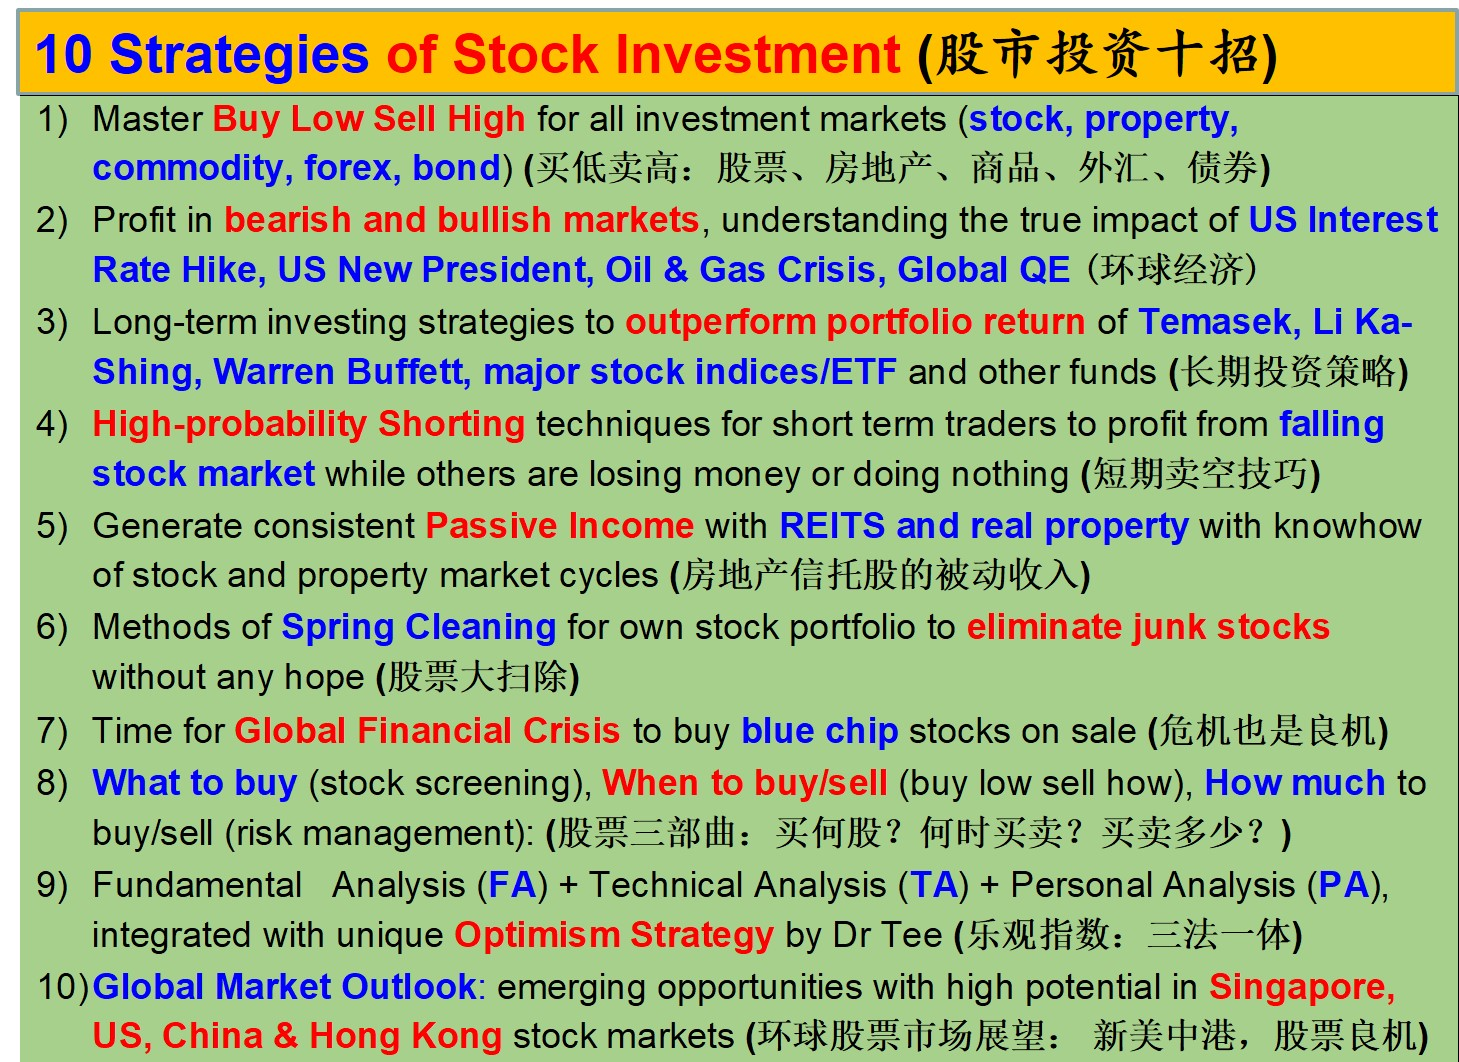 10 Strategies of Stock Investment